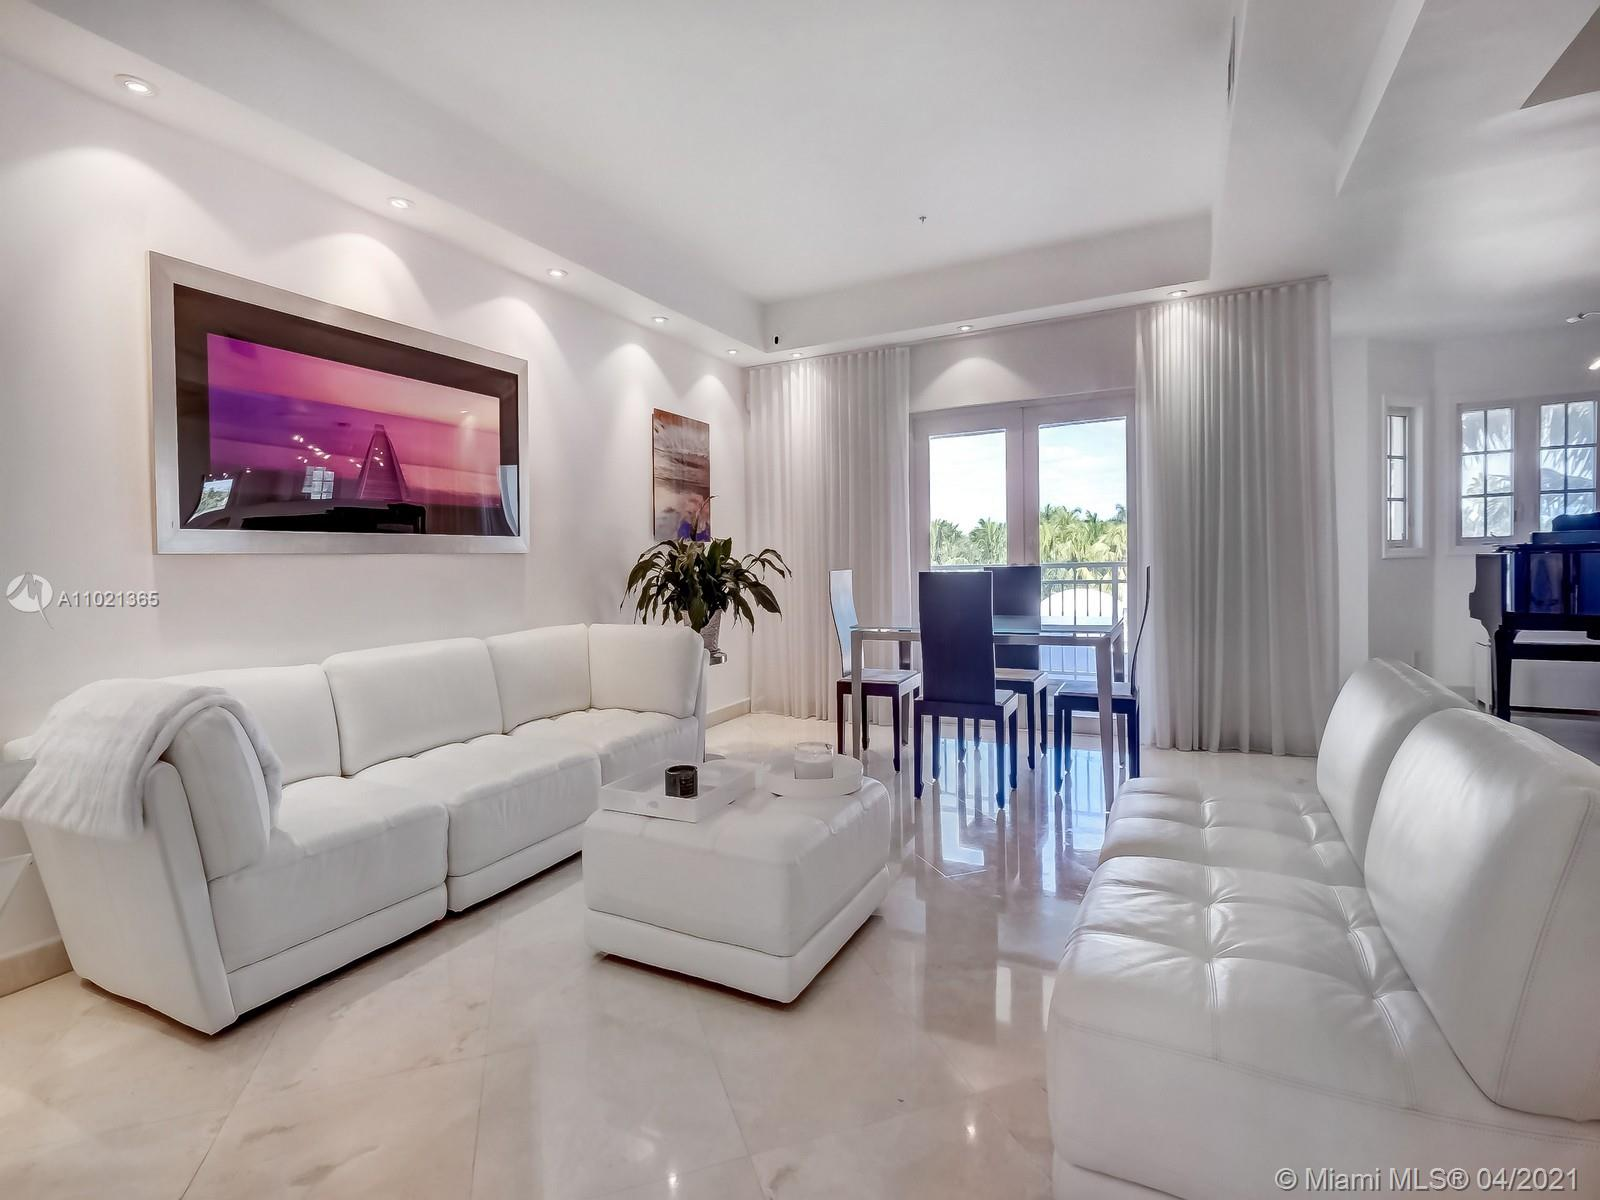 Located in sought-after Miami Beach this unique guard-gated Sunset Harbour townhome offers the ideal tropical lifestyle all within walking distance from boutiques, excellent restaurants, great gyms and more.  Bike, walk or scooter to the world-renowned beaches of South Beach from this 4th & 5th floor 2-story contemporary townhome boasting a modern open kitchen, huge master suite, wood and marble flooring and more.  Features hurricane impact doors and windows, Miele & GE Monogram appliances, 24x24 marble floors, granite countertops, walk-in closets, multiple balconies, large walk-in storage space adjacent the unit and 2 car prkg spaces.  Amenities include Sunset Harbour Yacht Club's olympic-size swimming pool, lounging areas and marina dock slips for purchase or lease based on availability.